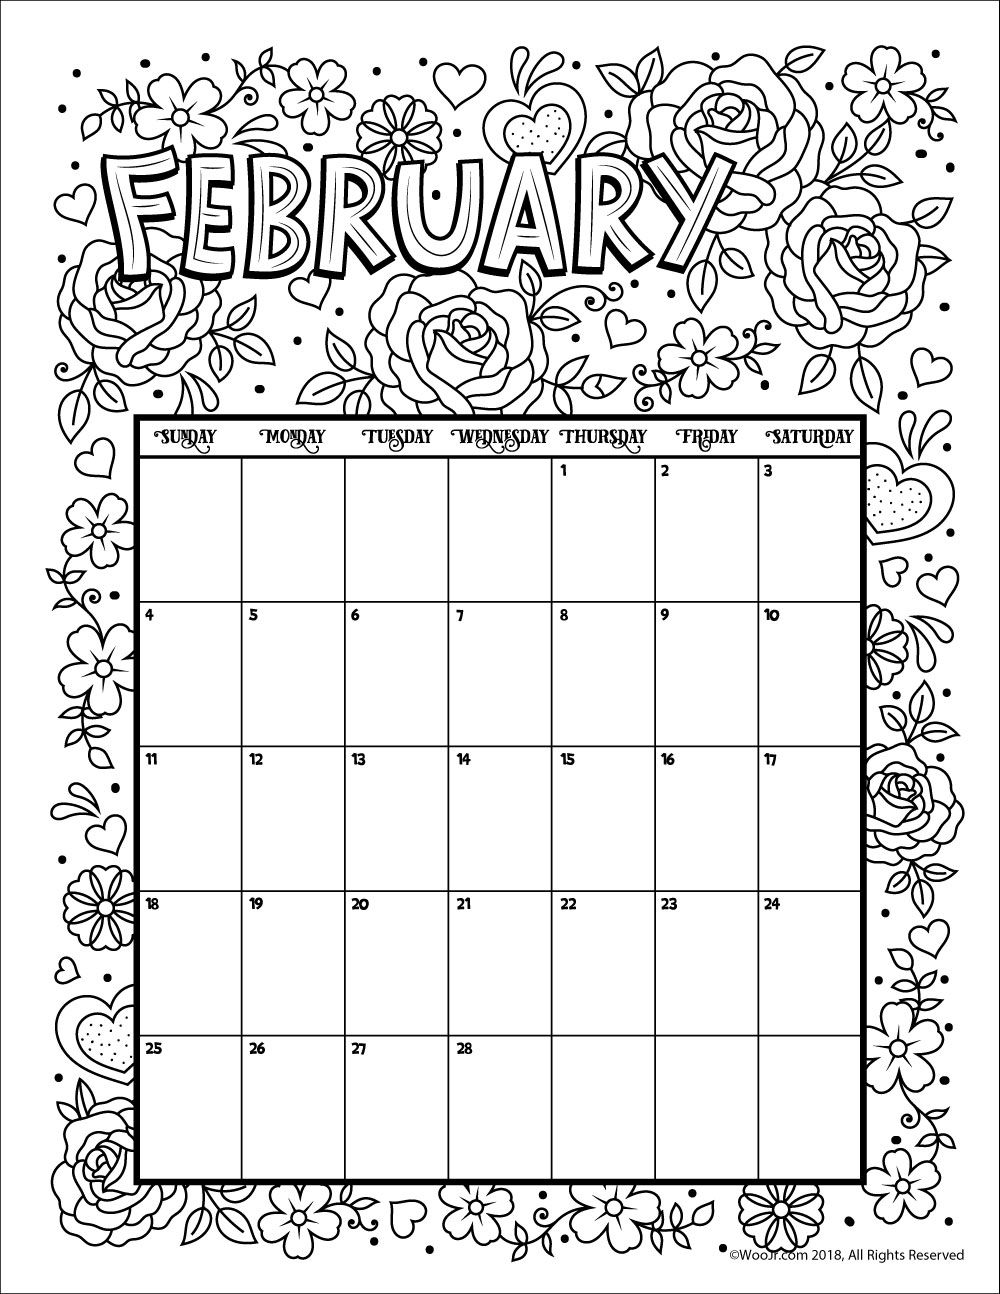 February 2018 Coloring Calendar Page | Stuff To Try